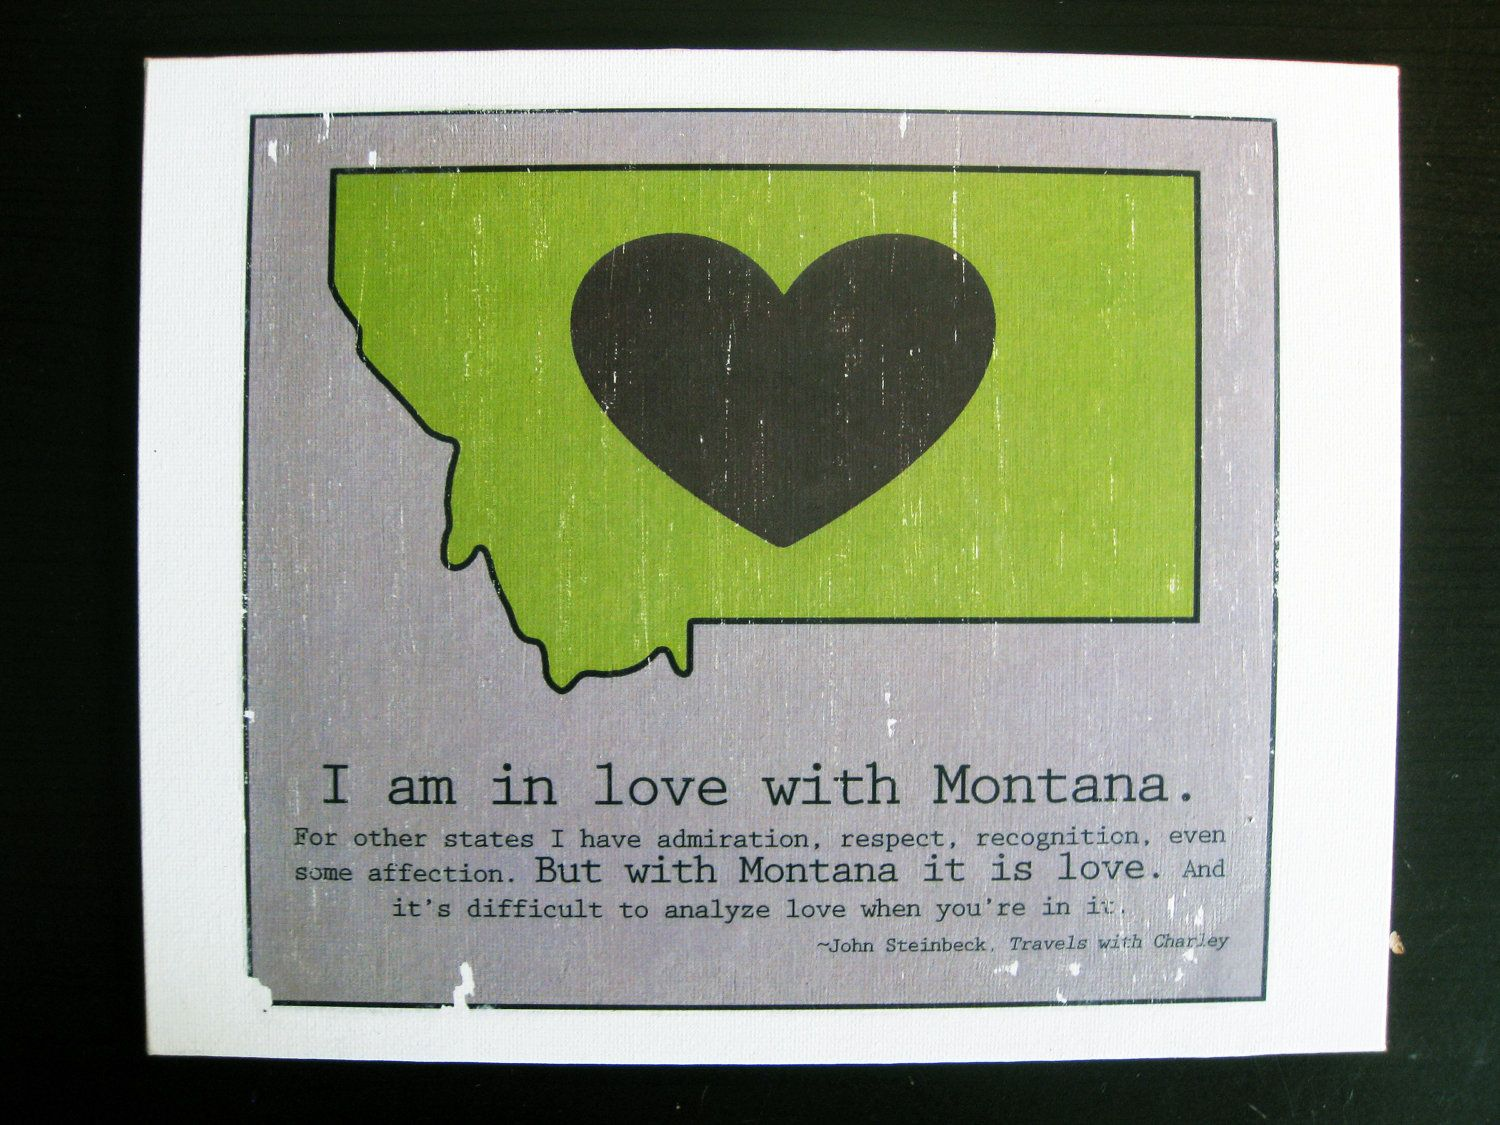 Montana Love State Map Canvas With John Steinbeck Travels With